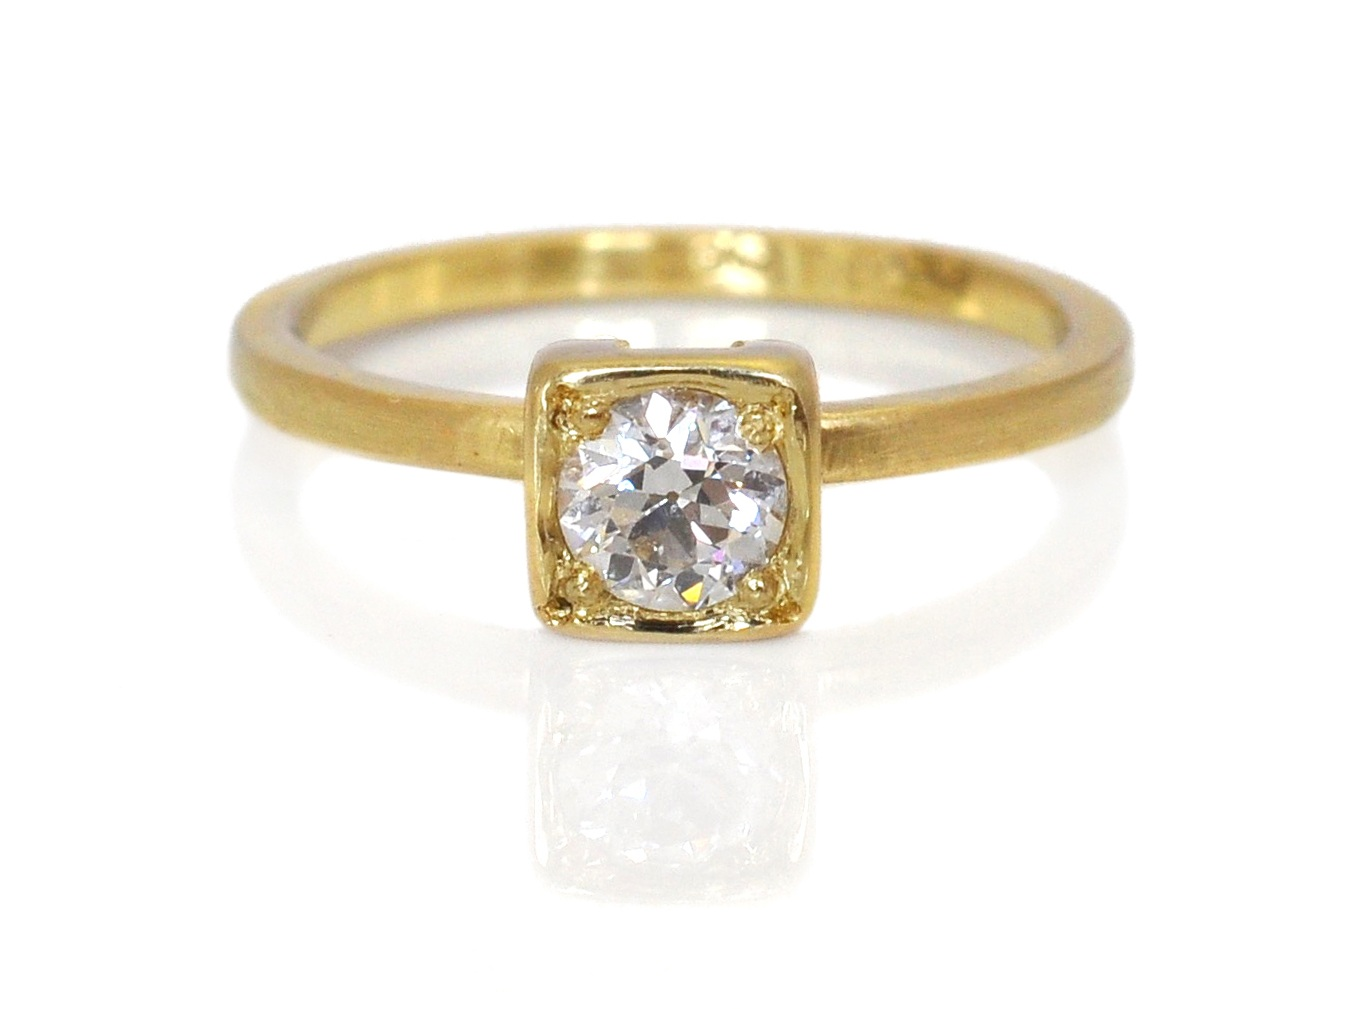 This unique custom remount is a mix of old and new in many ways. The diamond was a family heirloom and the new hand-fabricated 18k yellow gold setting was meant to mirror the original plate setting while adding a modern twist with the straight, clean lines.